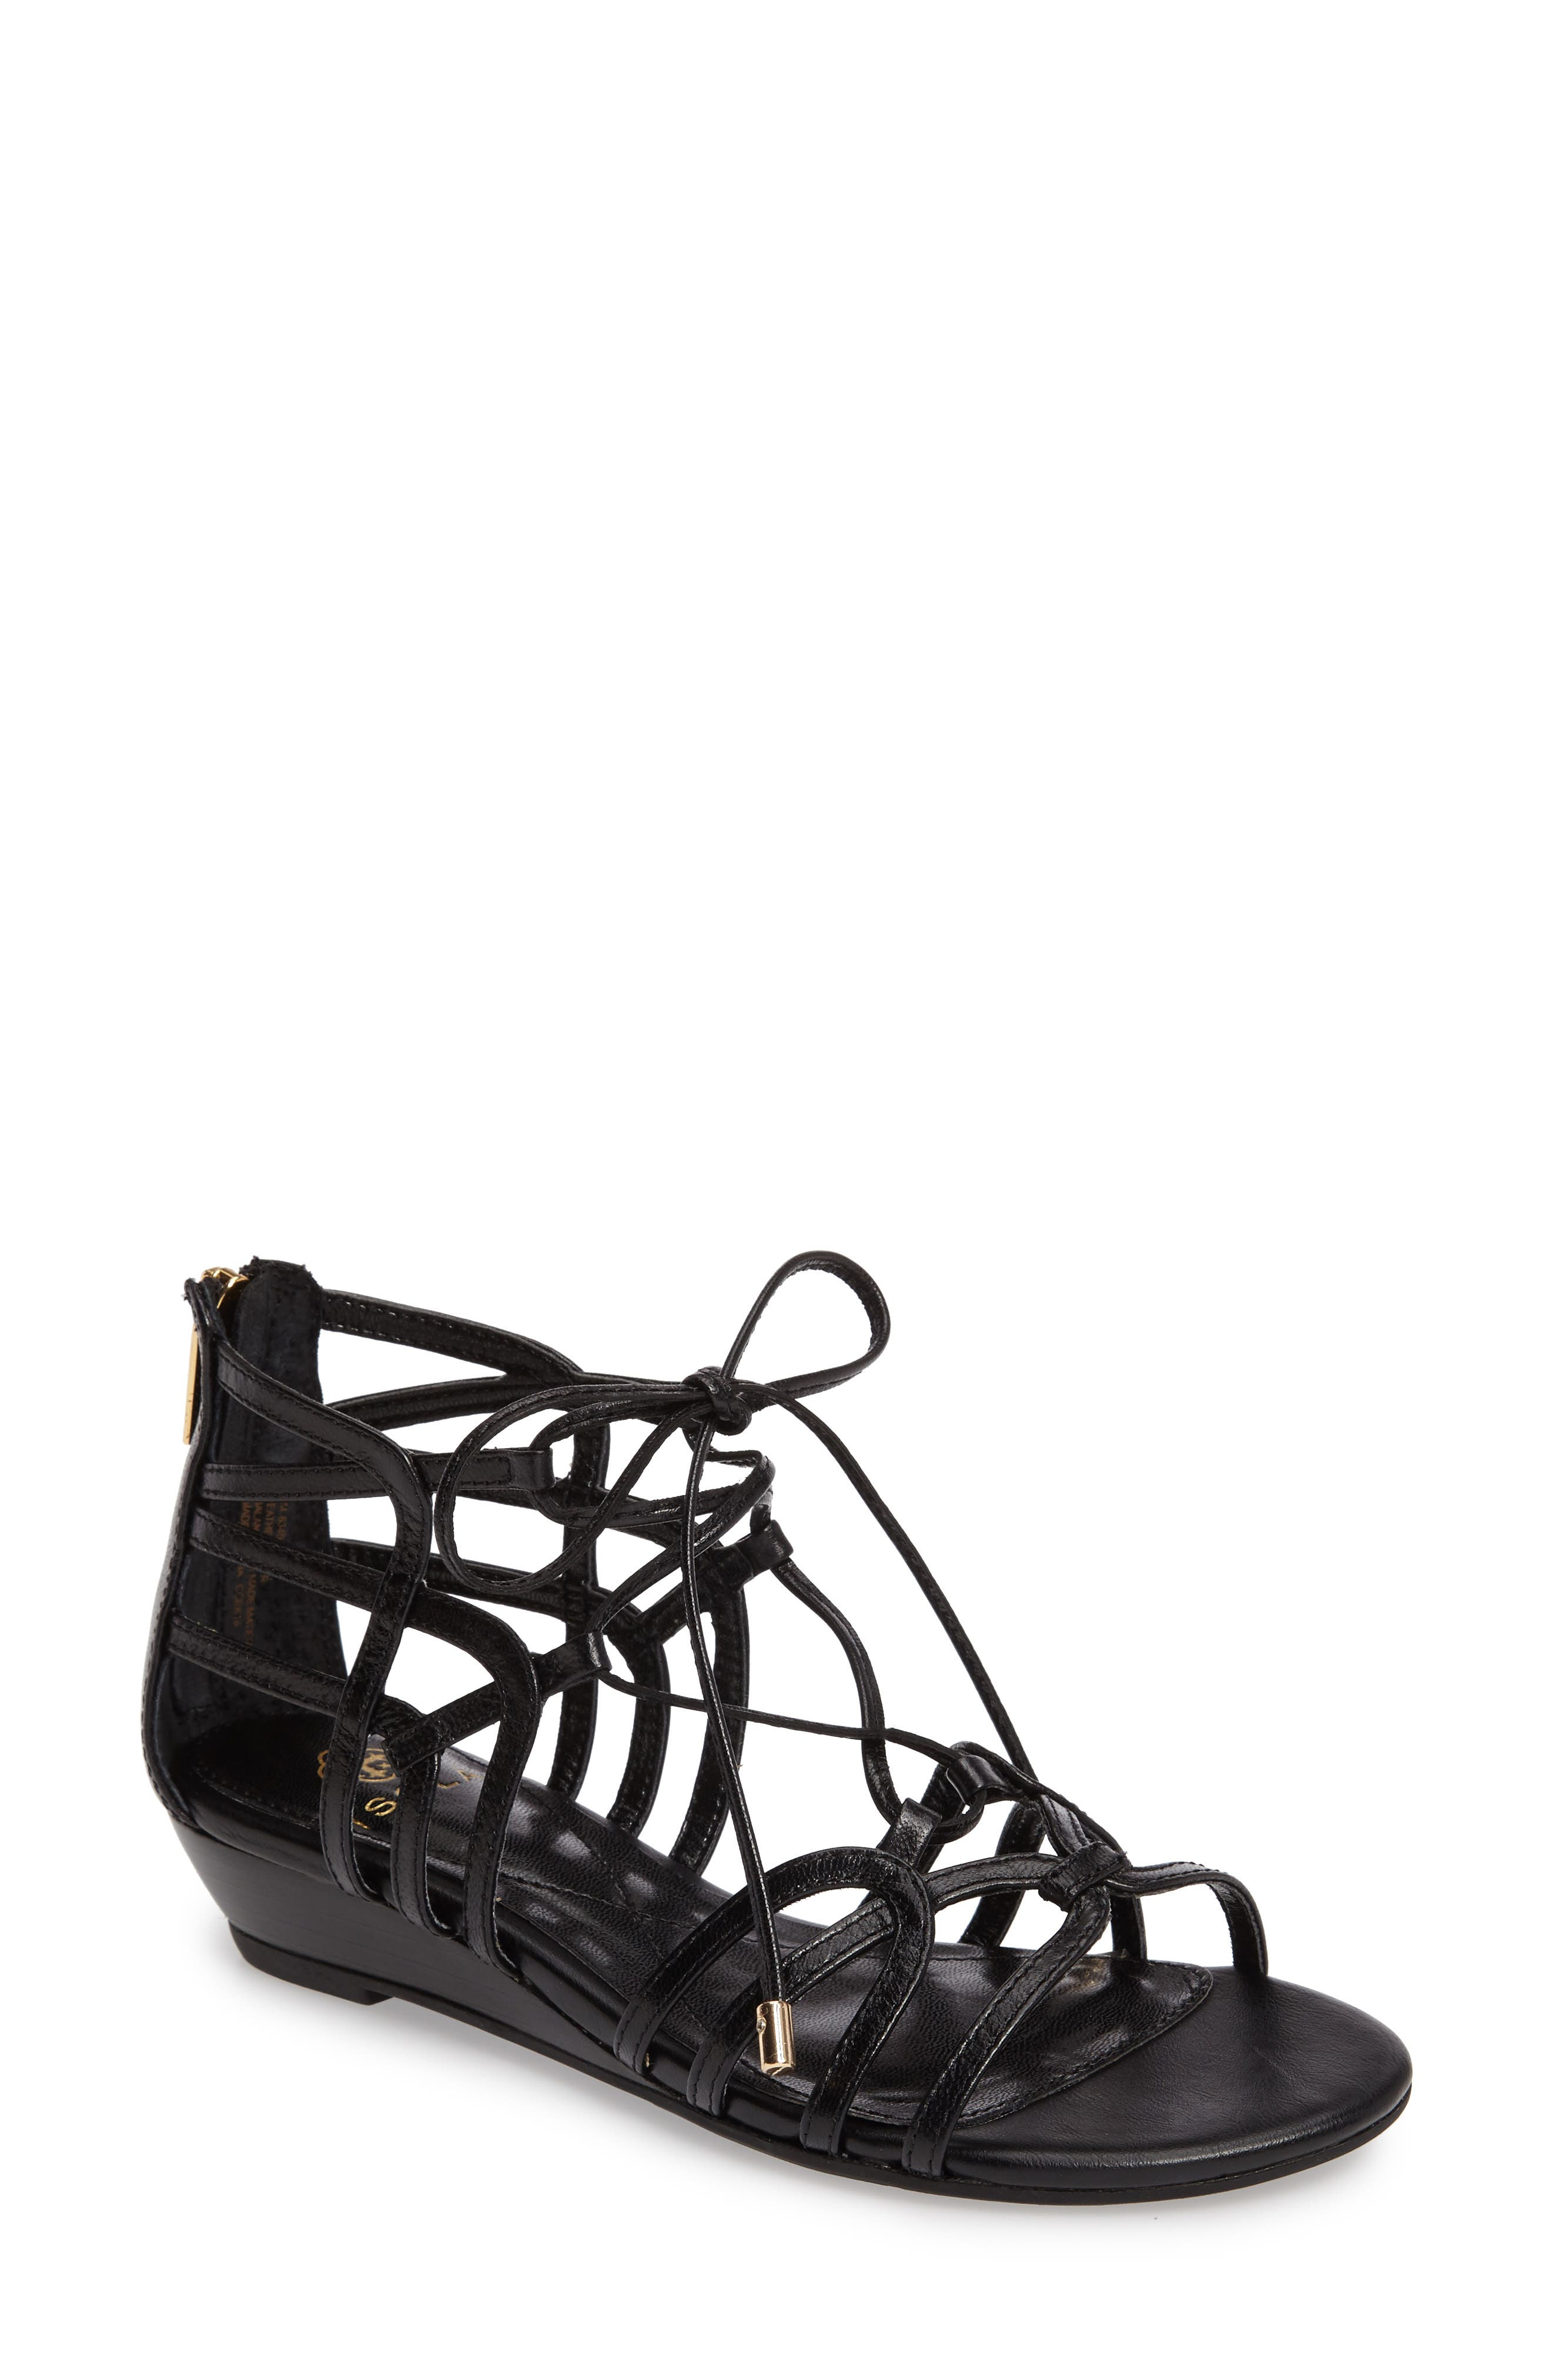 ISOLÁ Elisia Lace-Up Sandal, Main, color, BLACK LEATHER